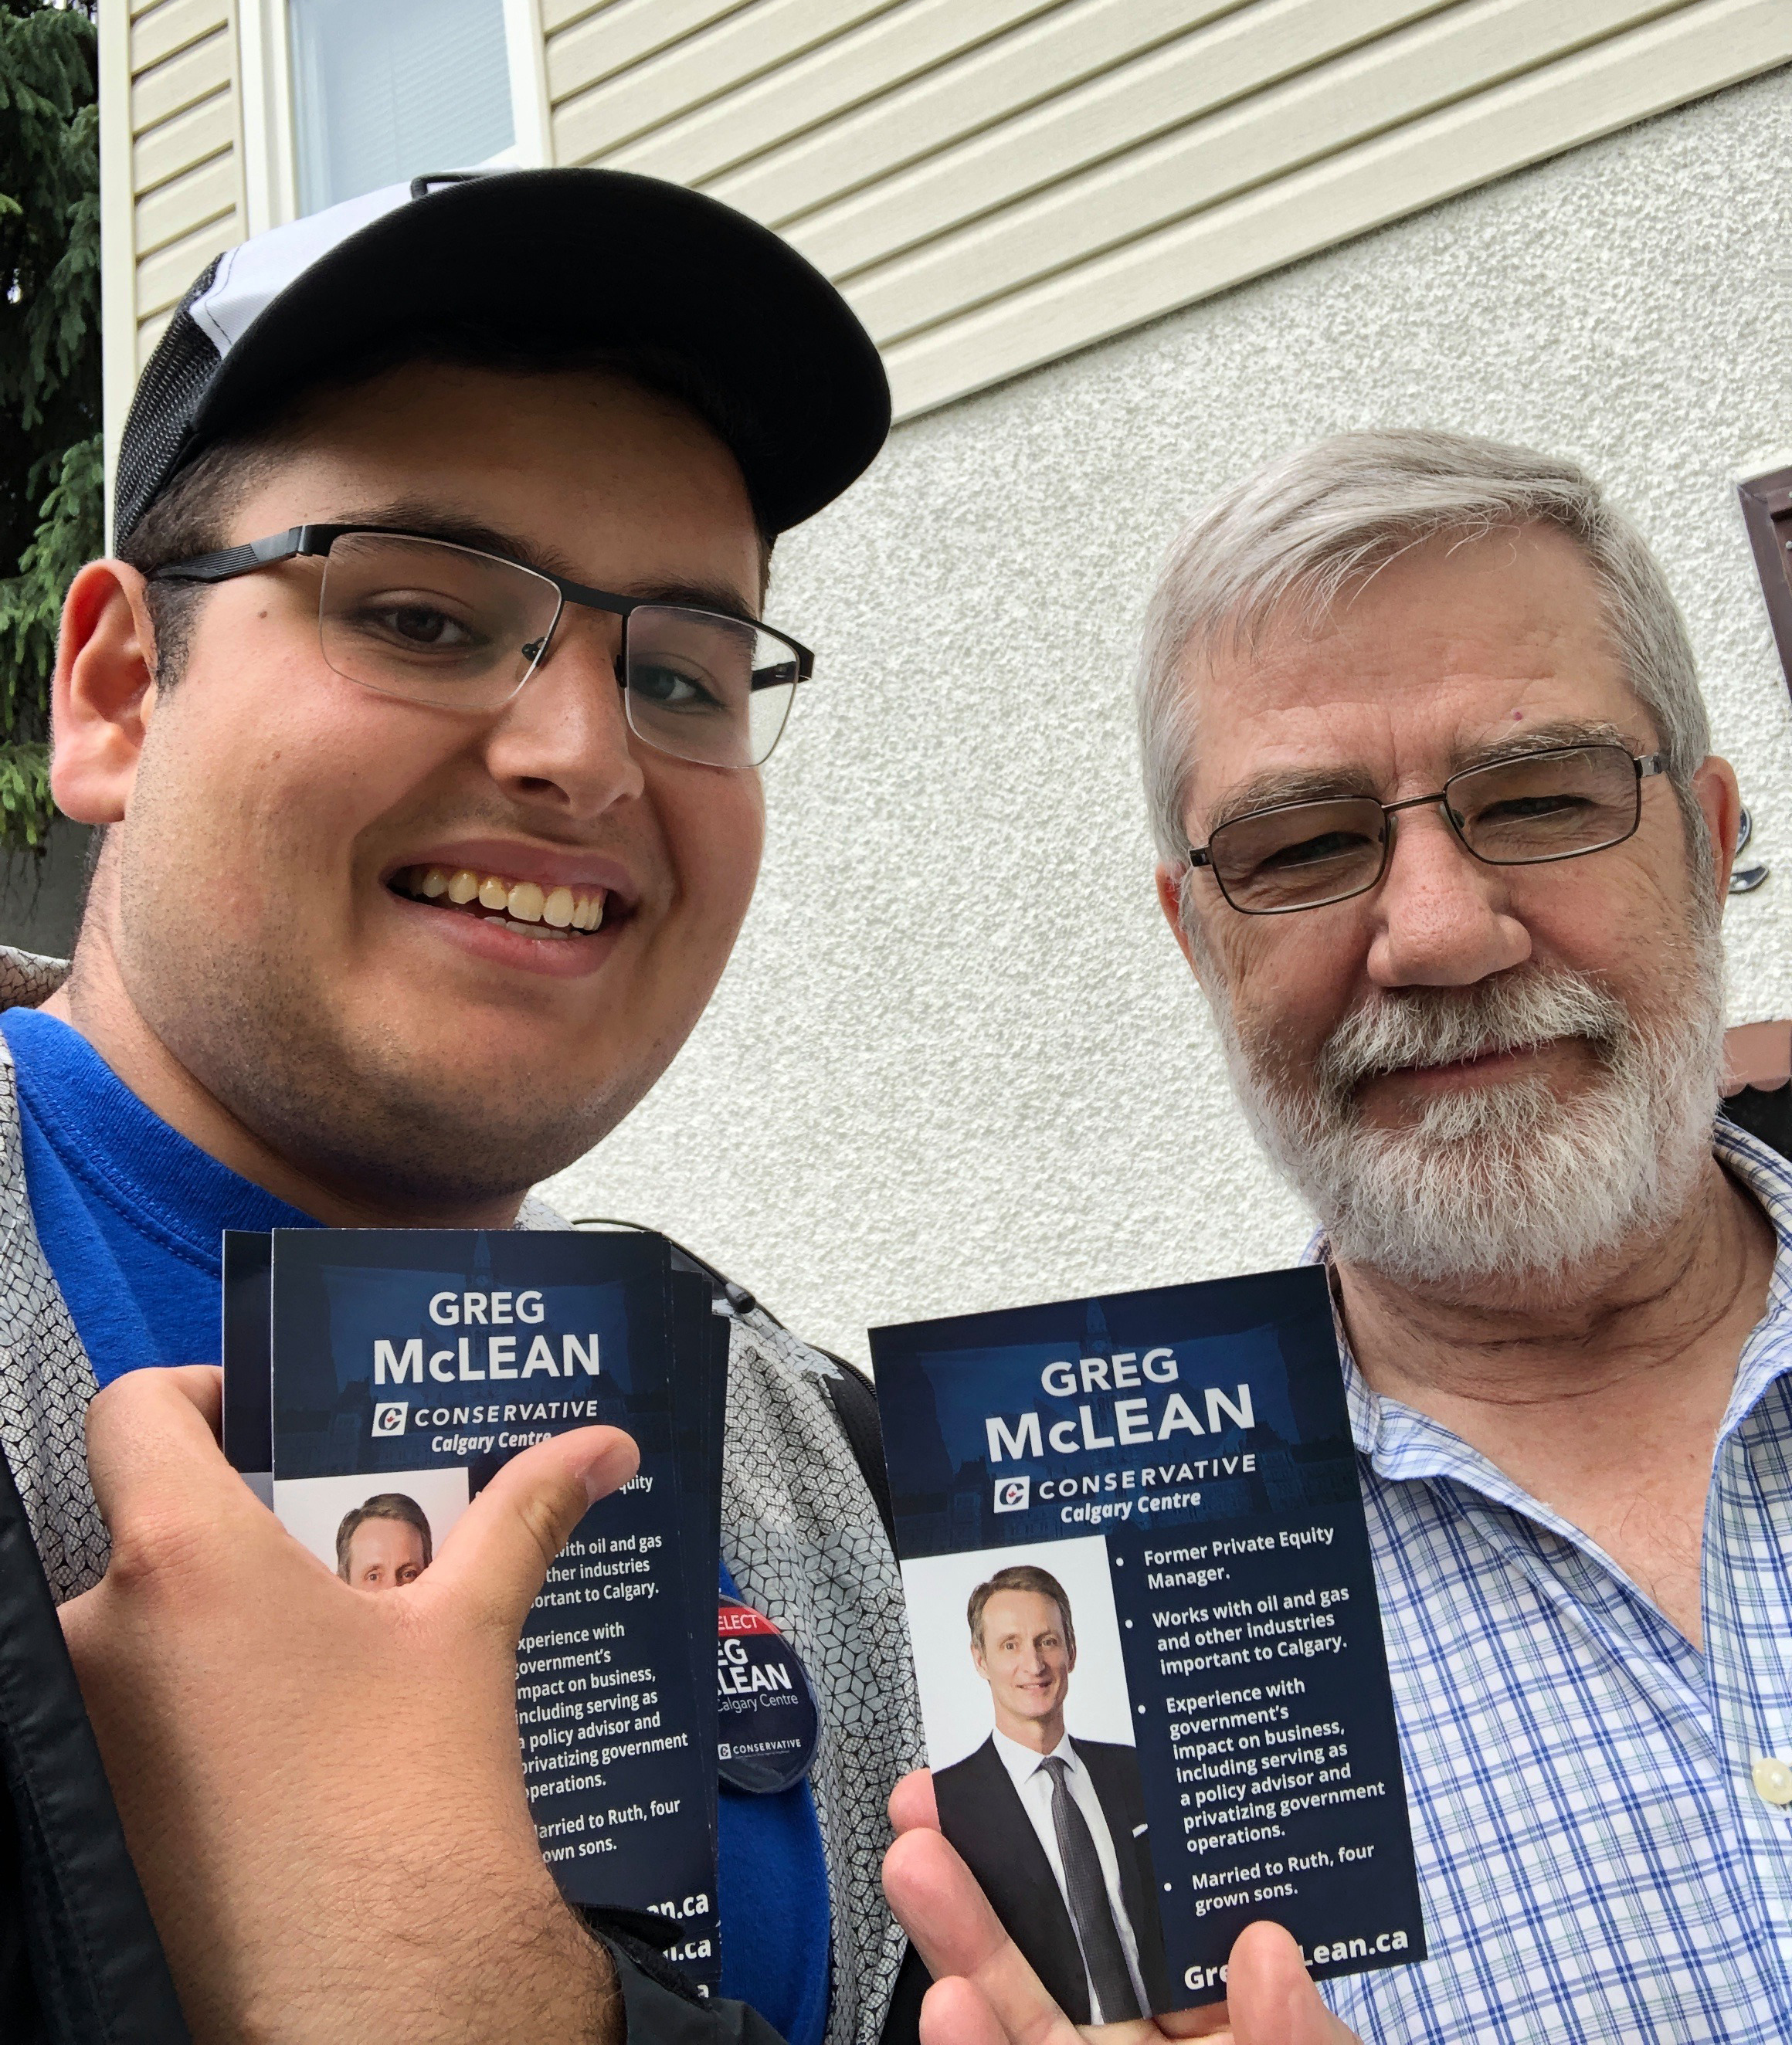 Knocking on doors is at the heart of how we campaign - one on one with voters, distributing literature, hearing questions and feedback.